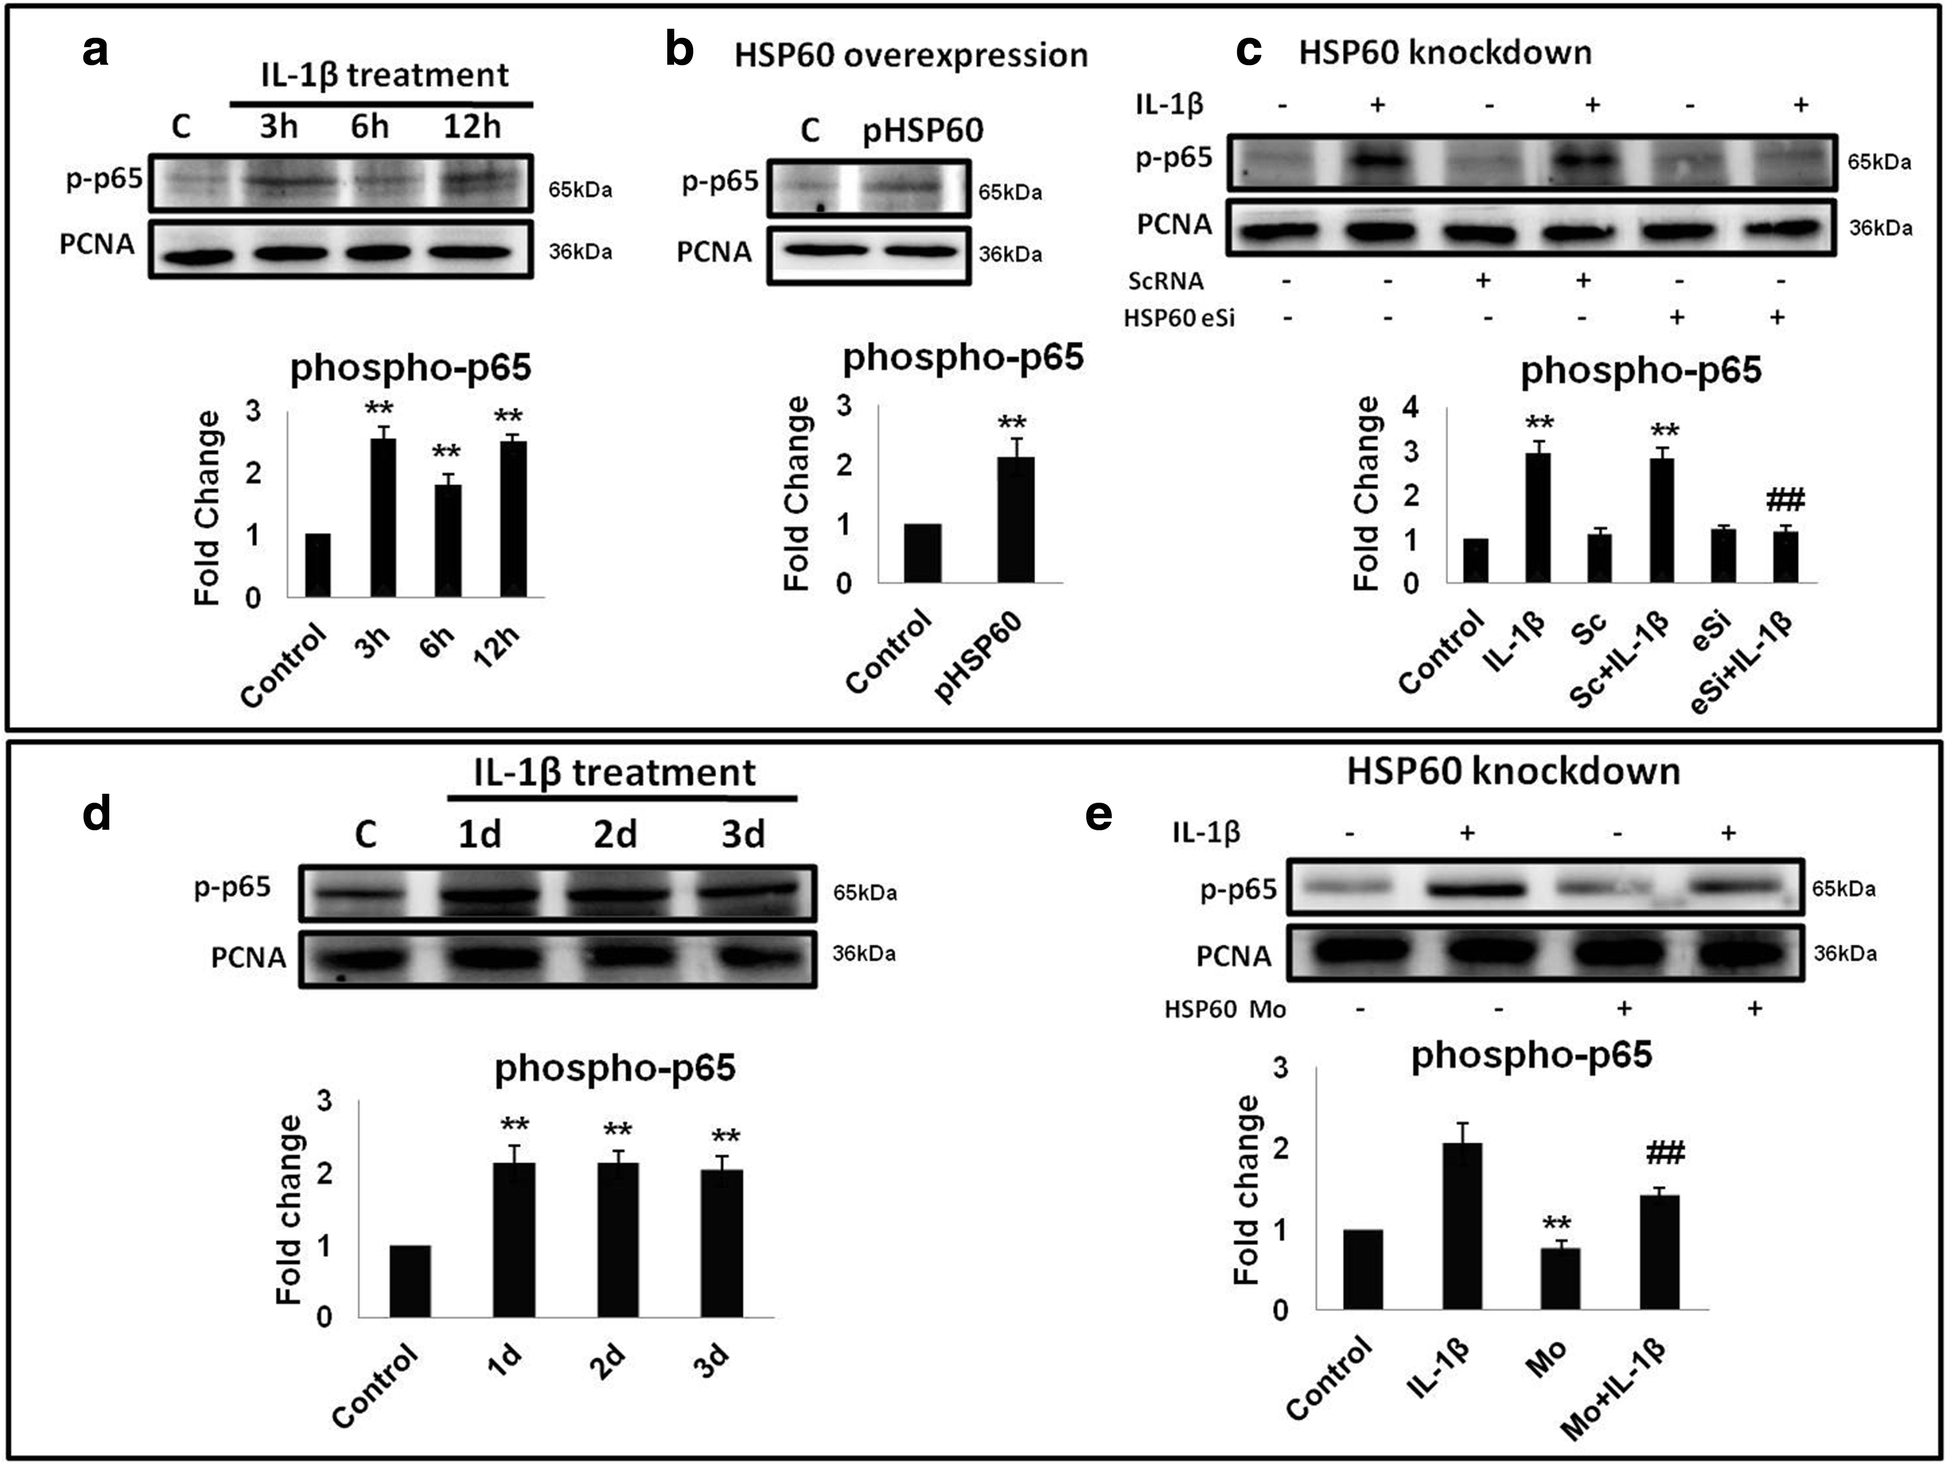 HSP60 critically regulates endogenous IL-1β production in